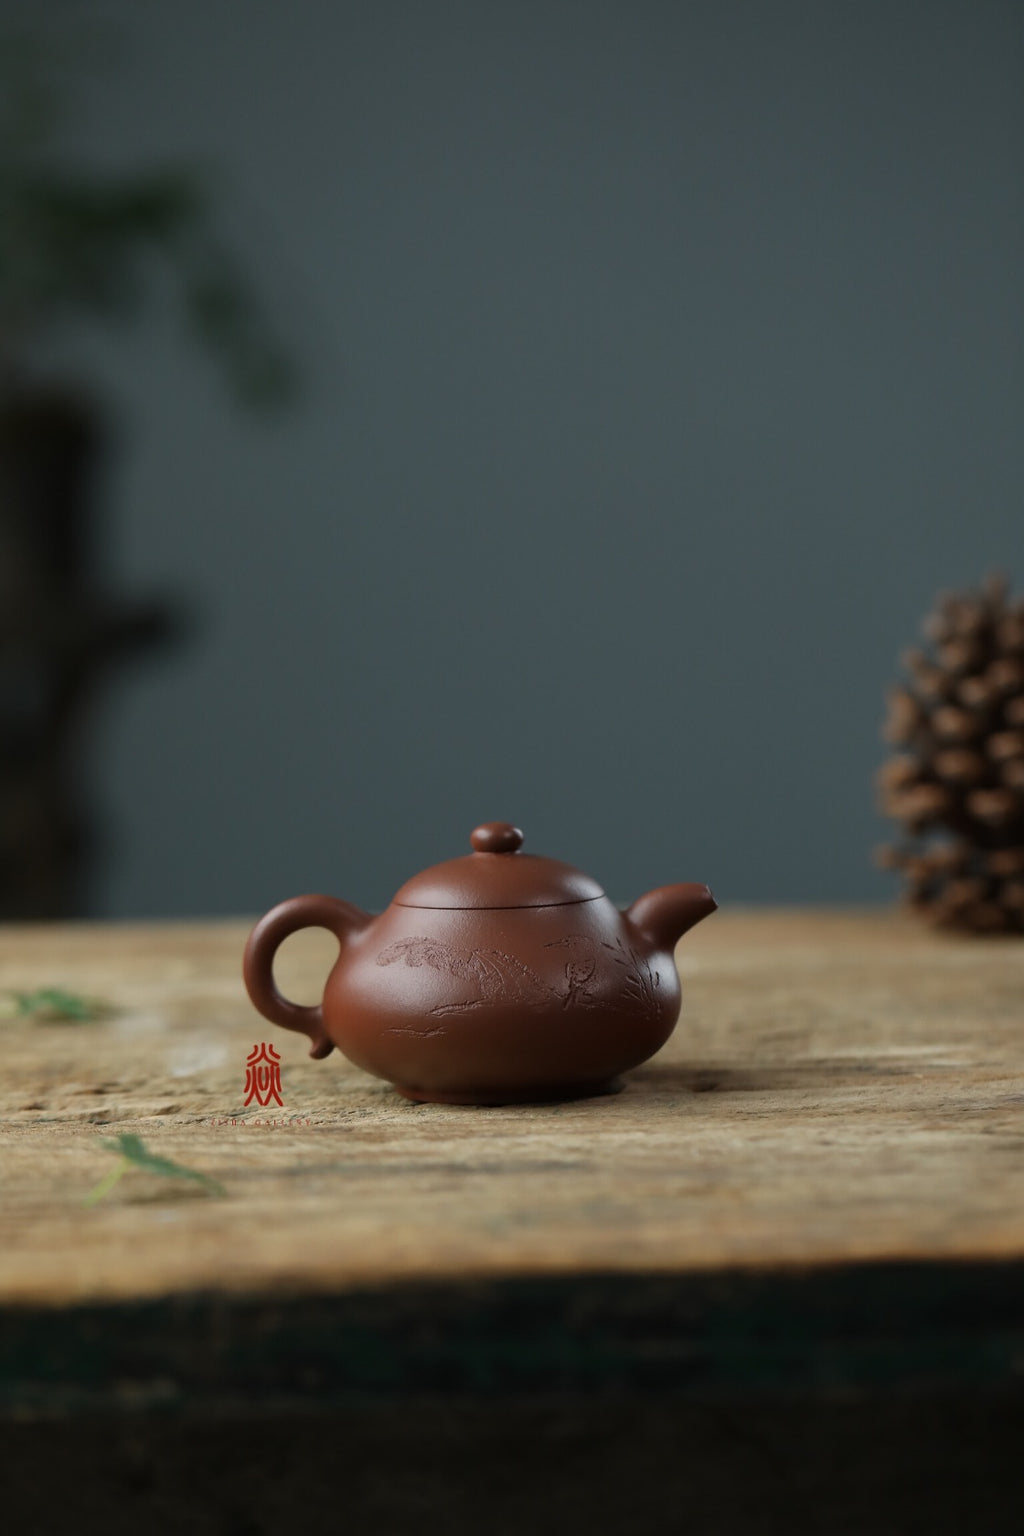 玉乳 Yu Ru 许息根  Xu Xi Gen 150ML Di Cao Qing zini 底槽清 - The Phans Yixing Zisha Teapot